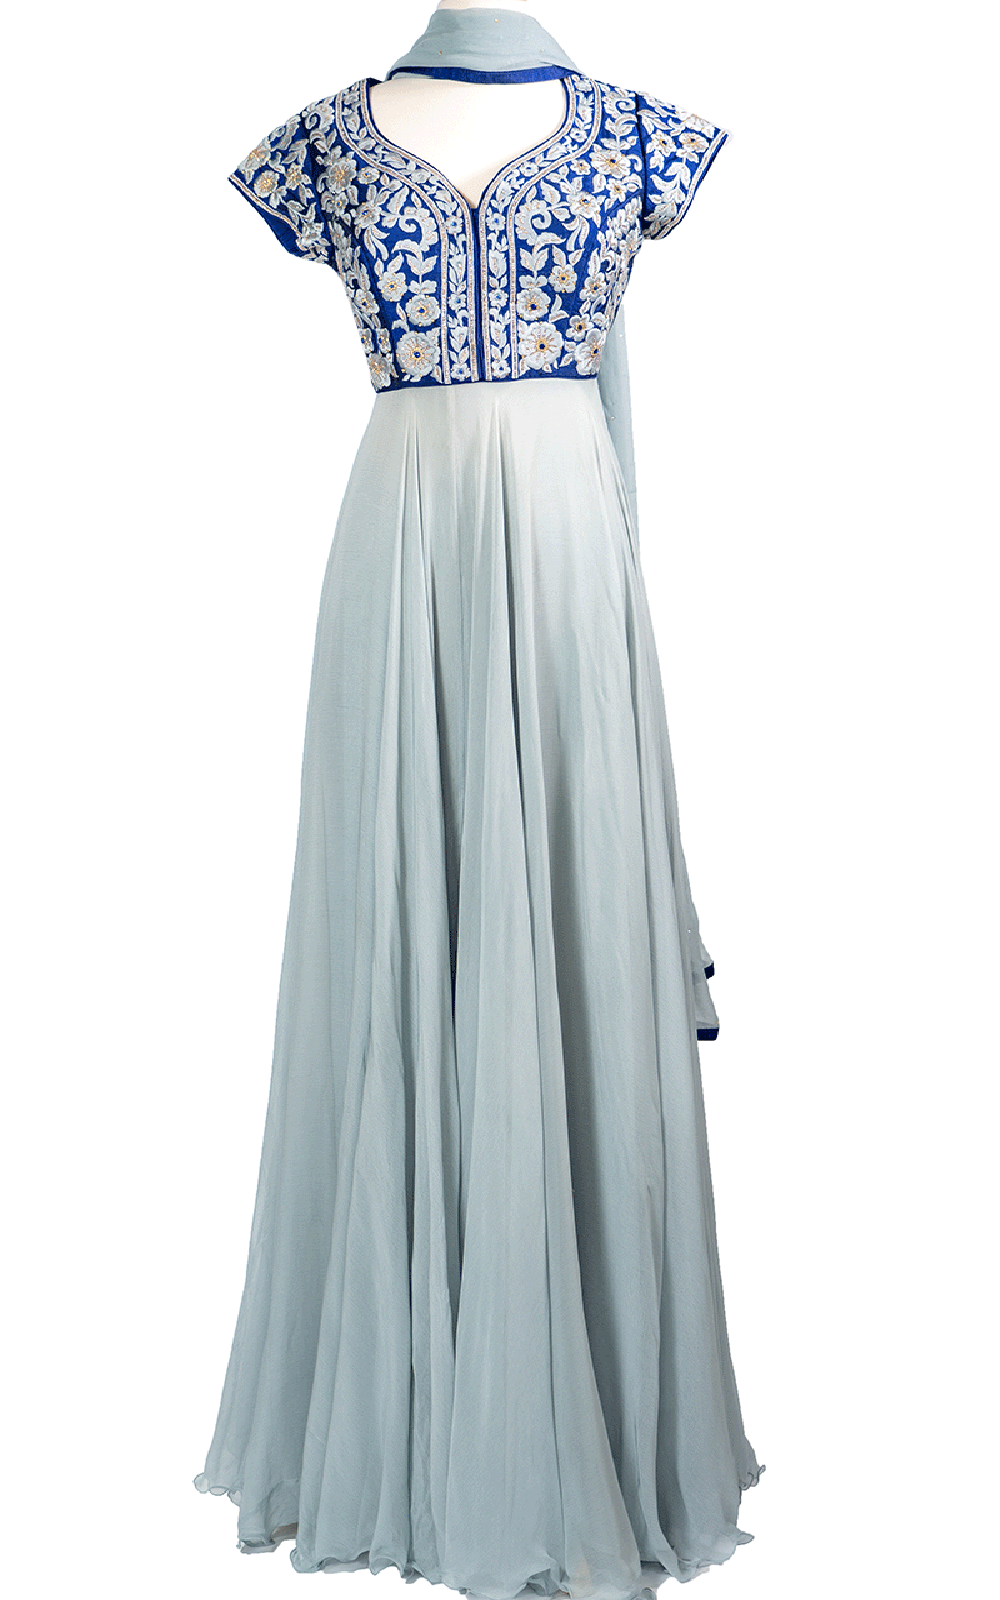 Blue Top Anarkali with Grey Floral Threadwork